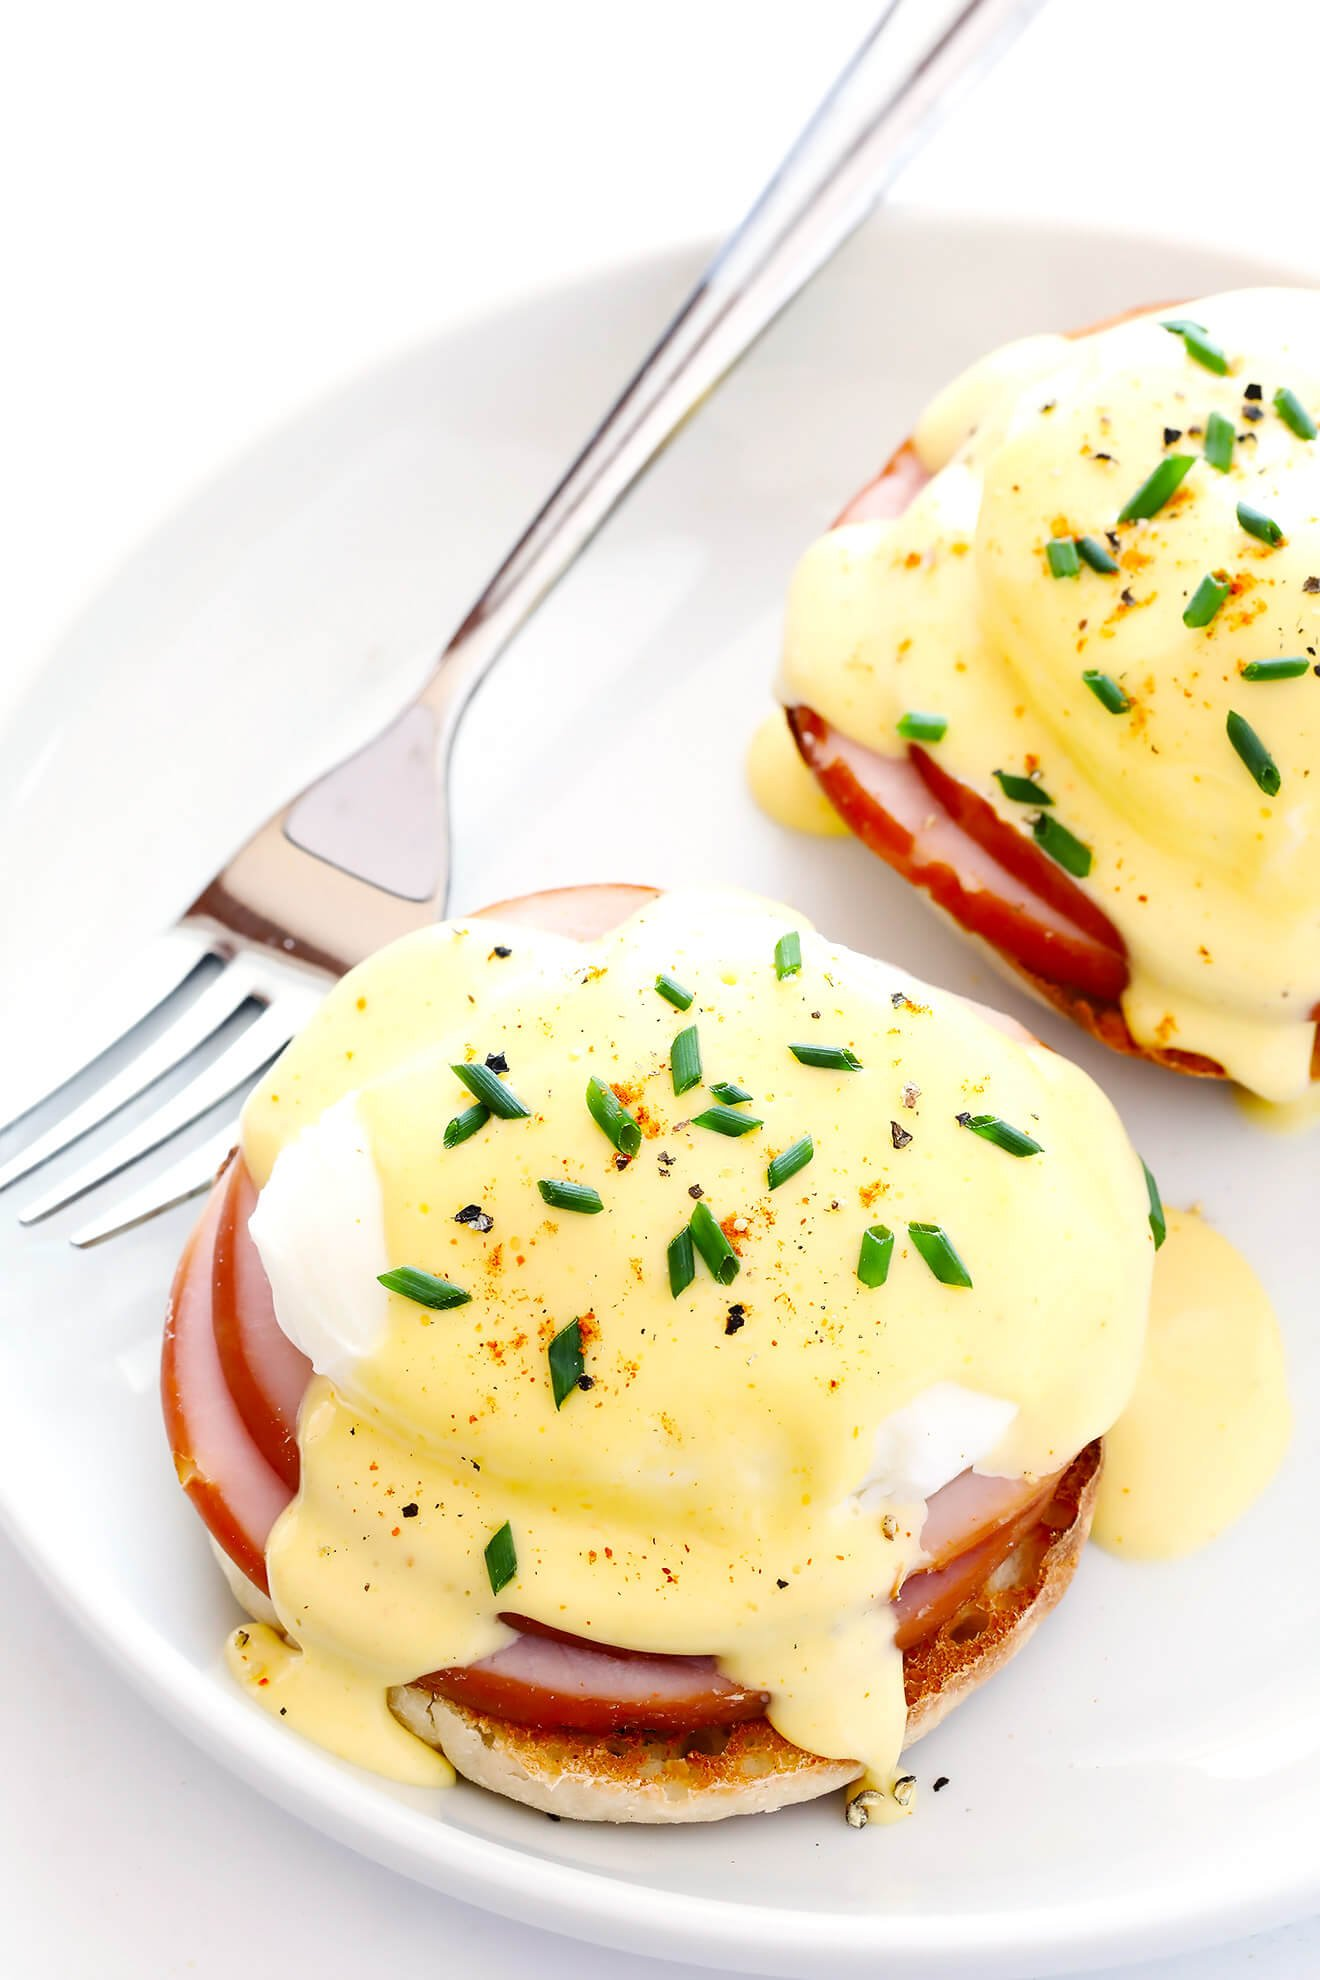 This Blender Hollandaise Sauce recipe is the perfect topping for classic Eggs Benedict! One of my all-time favorite recipes for breakfast or brunch! | gimmesomeoven.com